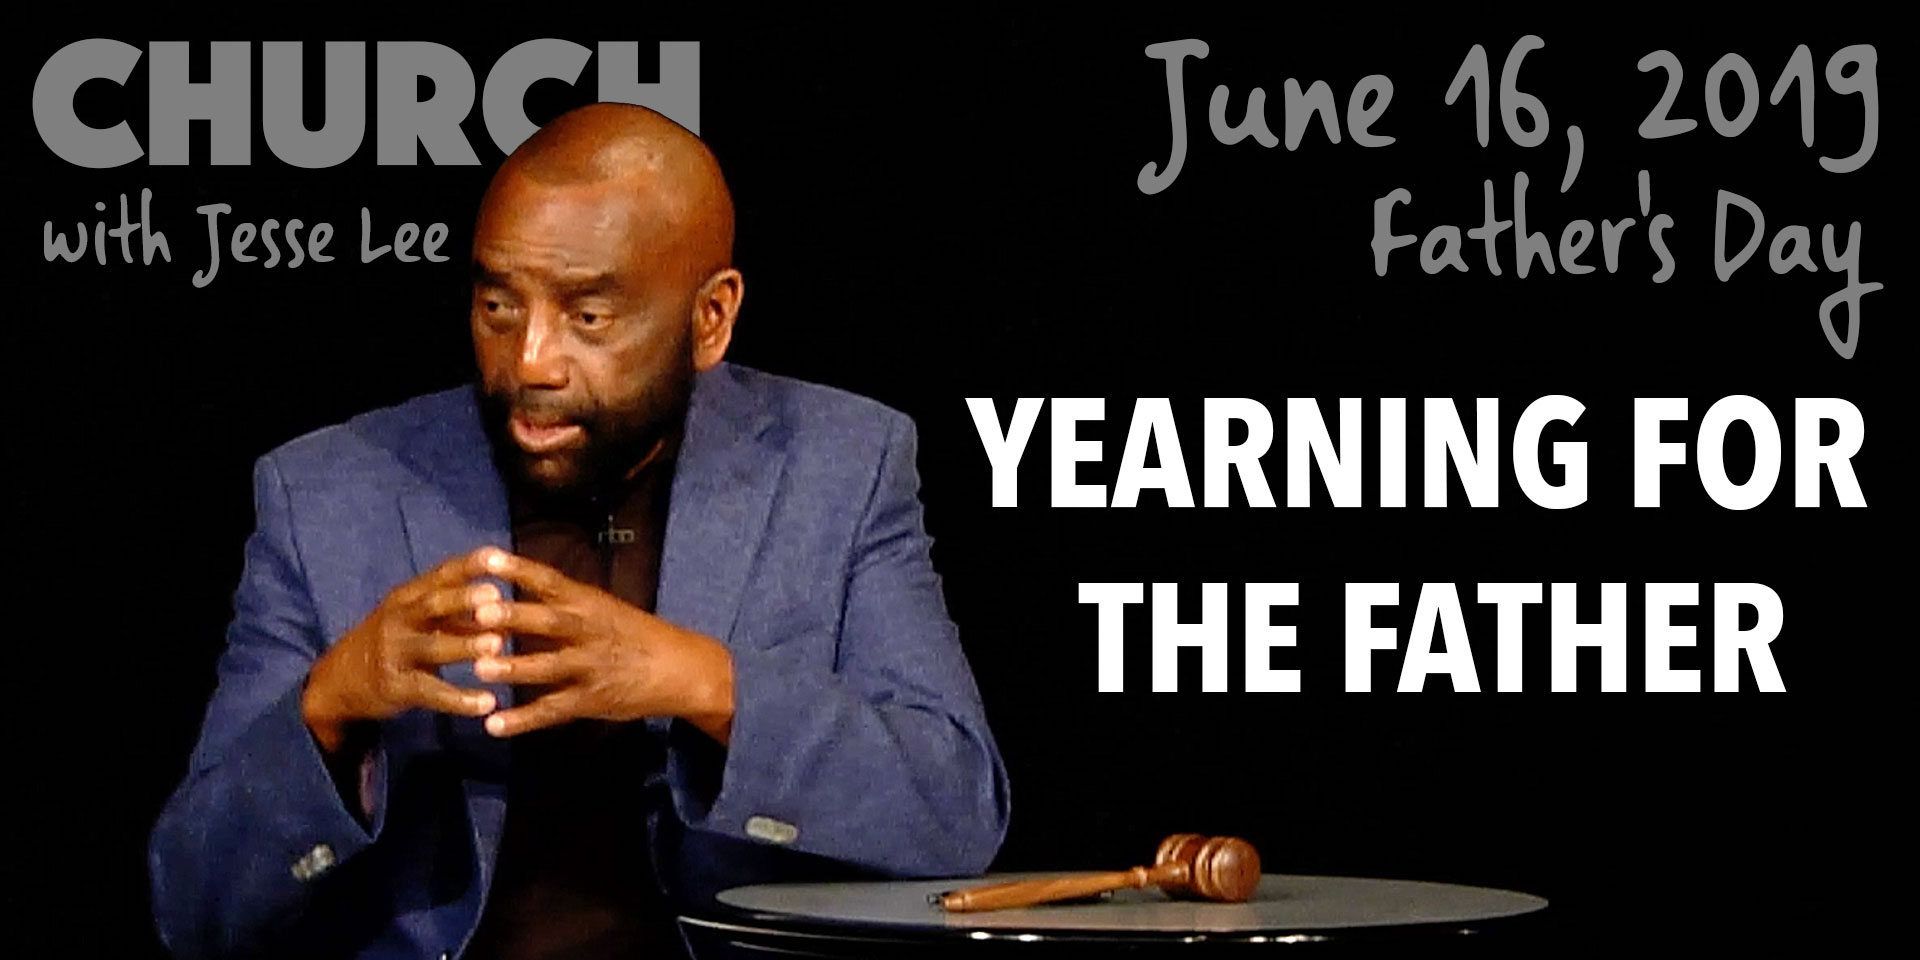 Yearning for the Father (Father's Day Church, June 16, 2019)